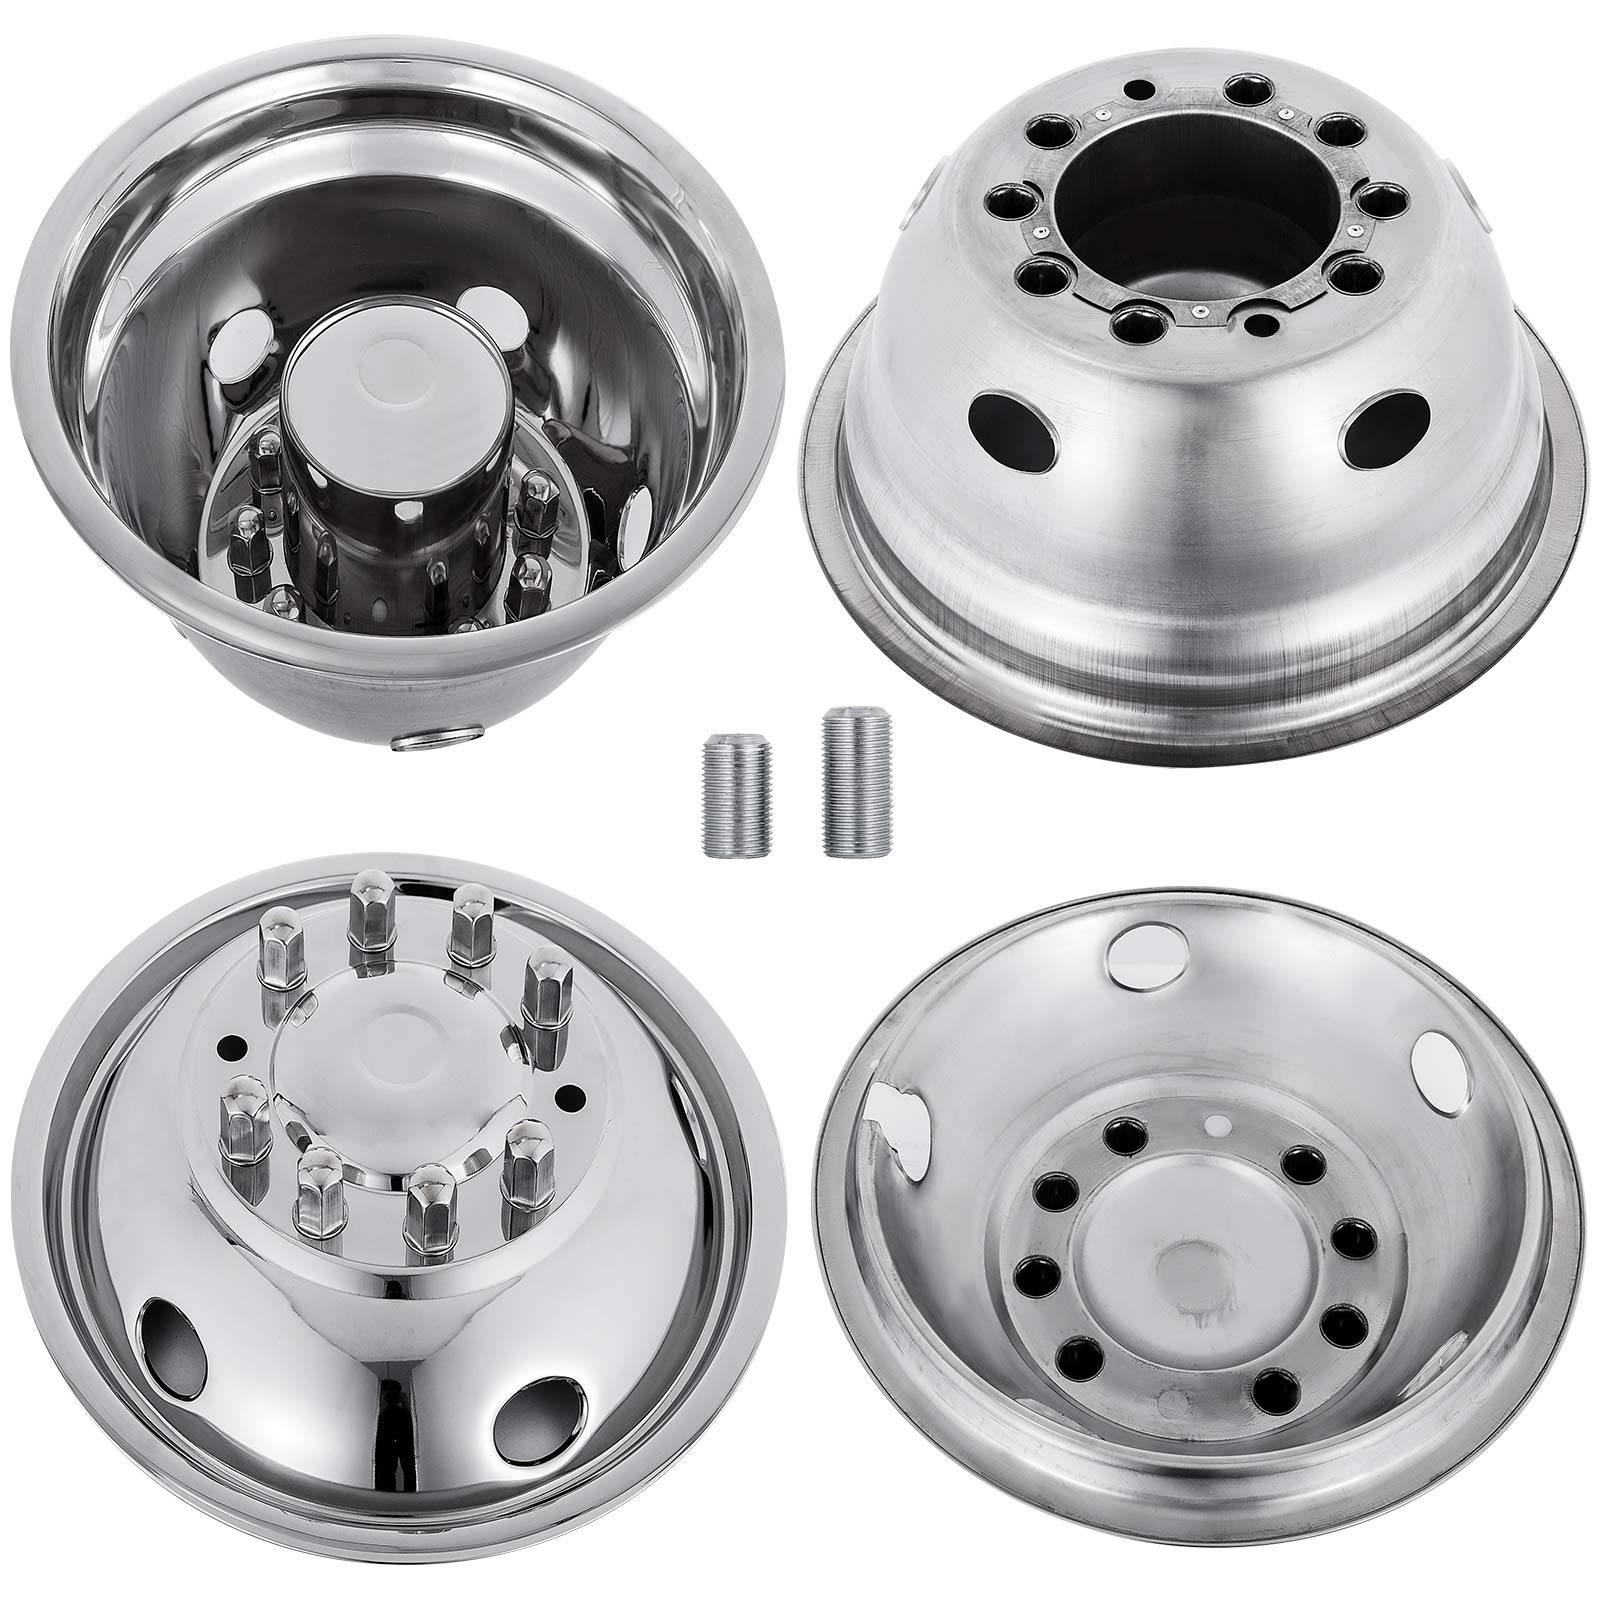 Mophorn 4 PCS of Wheel Simulators 19.5 Inch 10 Lug Hubcap Kit Fit for 2005-2017 Ford F450 - F550 2WD Trunk Polished Stainless Steel Bolt On Dually Wheel Cover Set (19.5'') by Mophorn (Image #3)